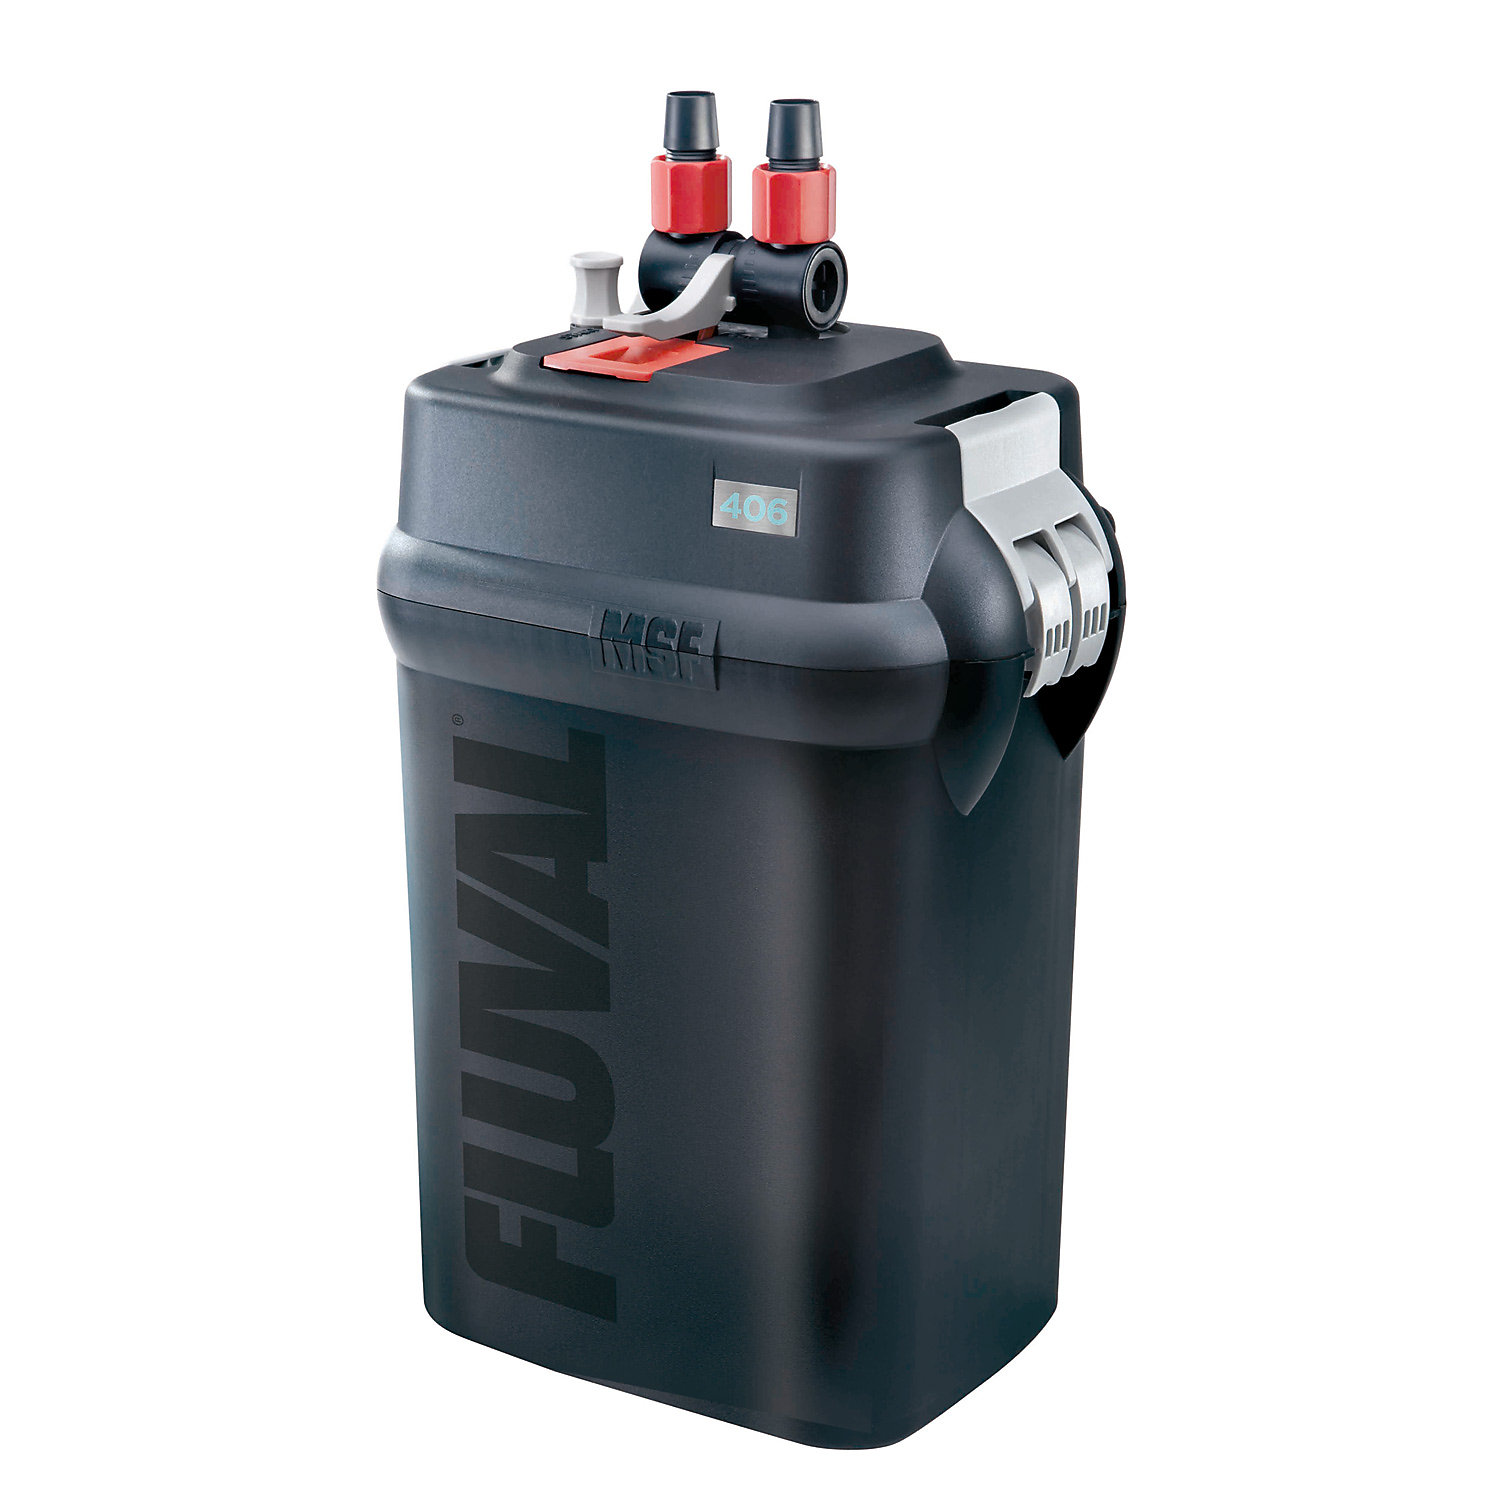 Fluval upc barcode for 10 gallon fish tank with filter